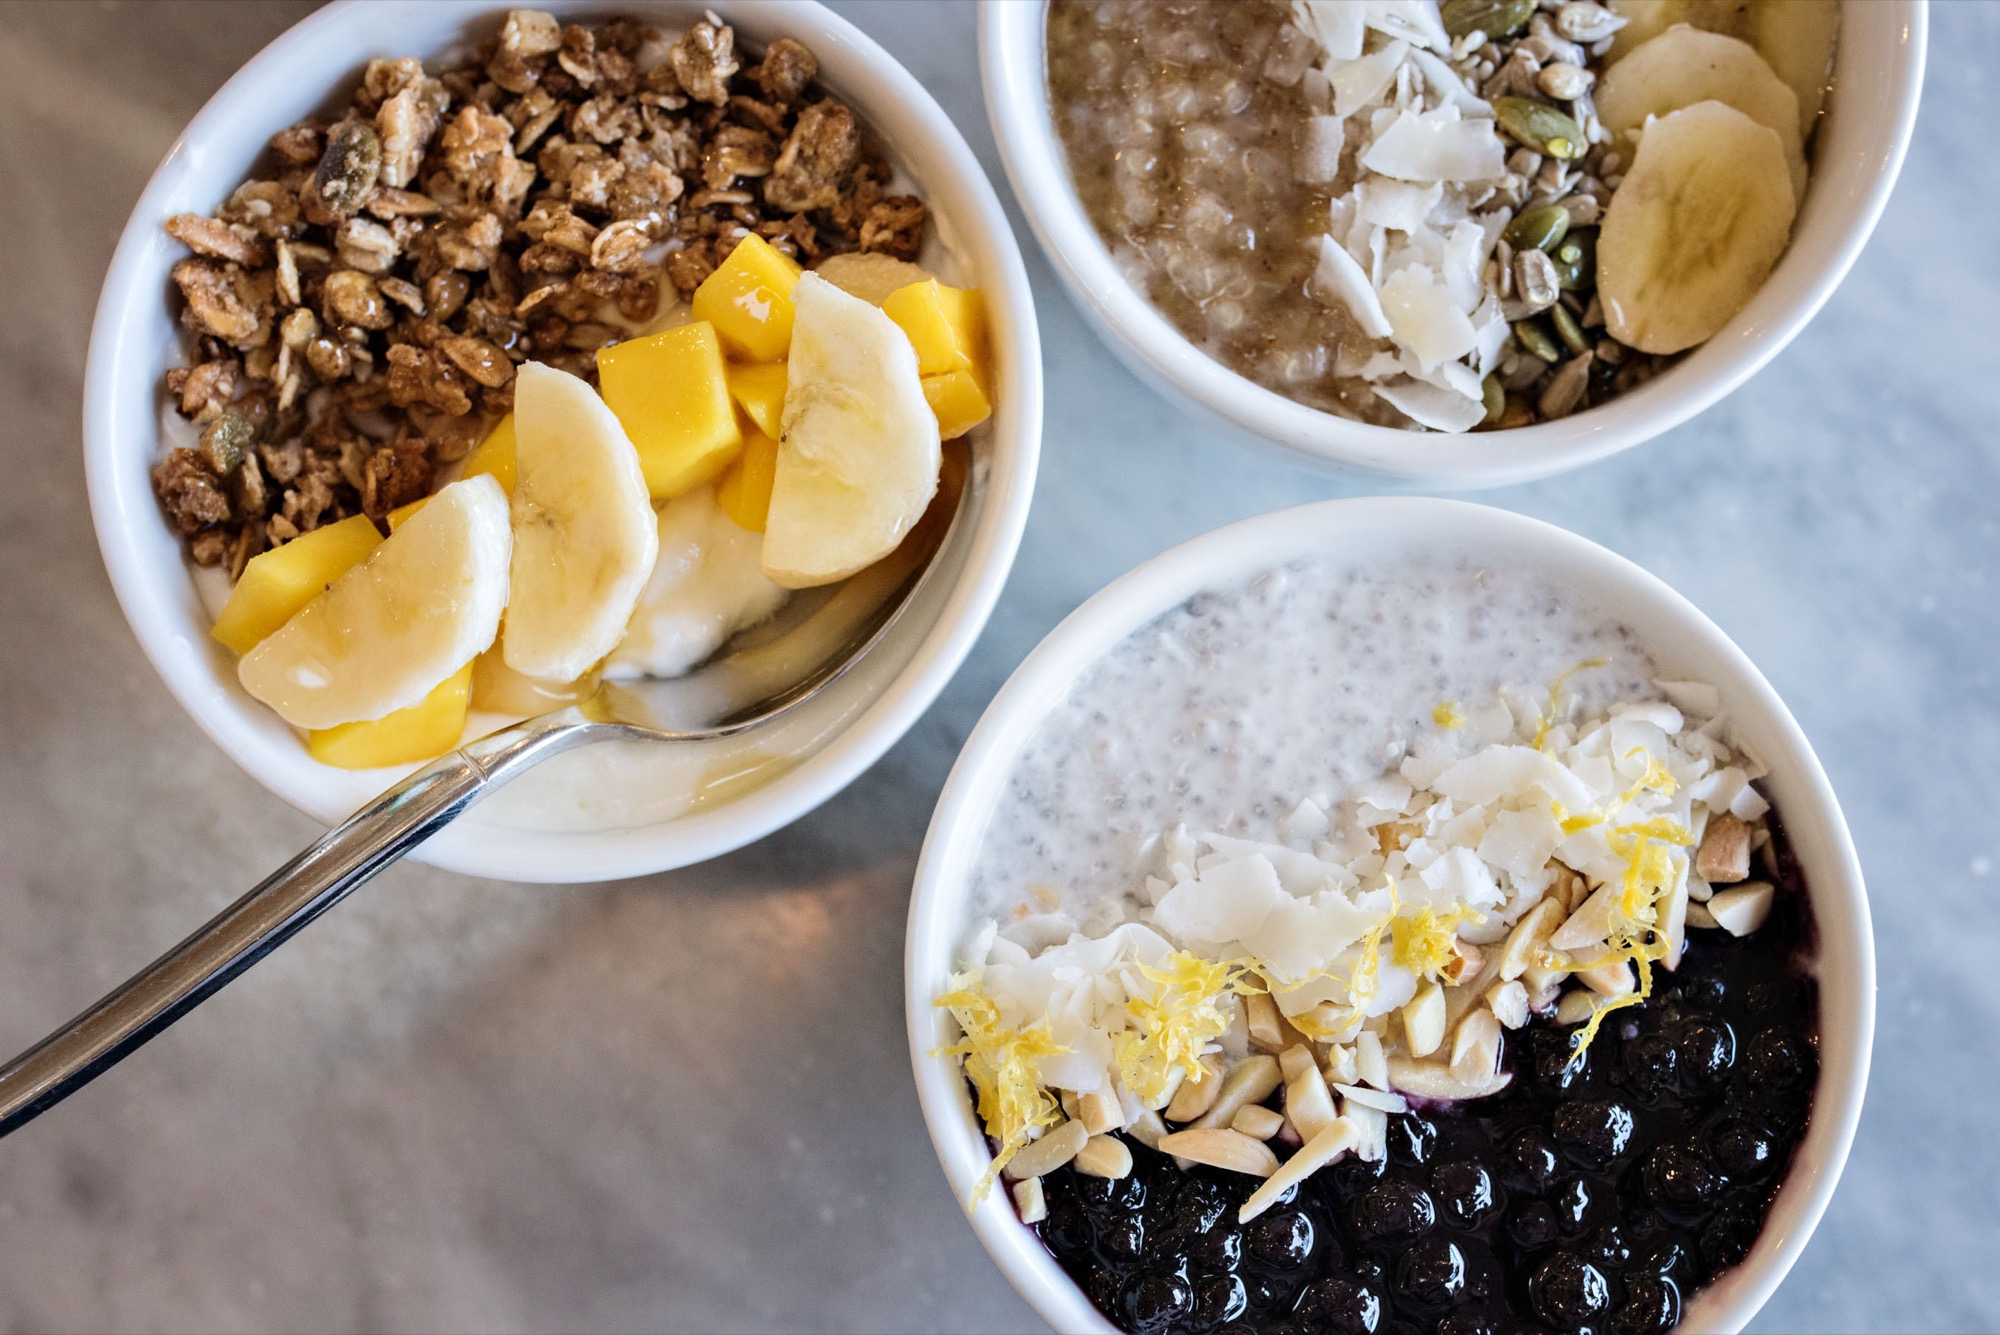 L to R: Müsli B with seasonal fruit / Quinoa Porridge with coconut flakes, toasted seeds and banana / Coconut Chia Seed Pudding with coconut flakes, crushed almonds, and blueberry-lemon compote / Photo by D'Ann McCormick Boal